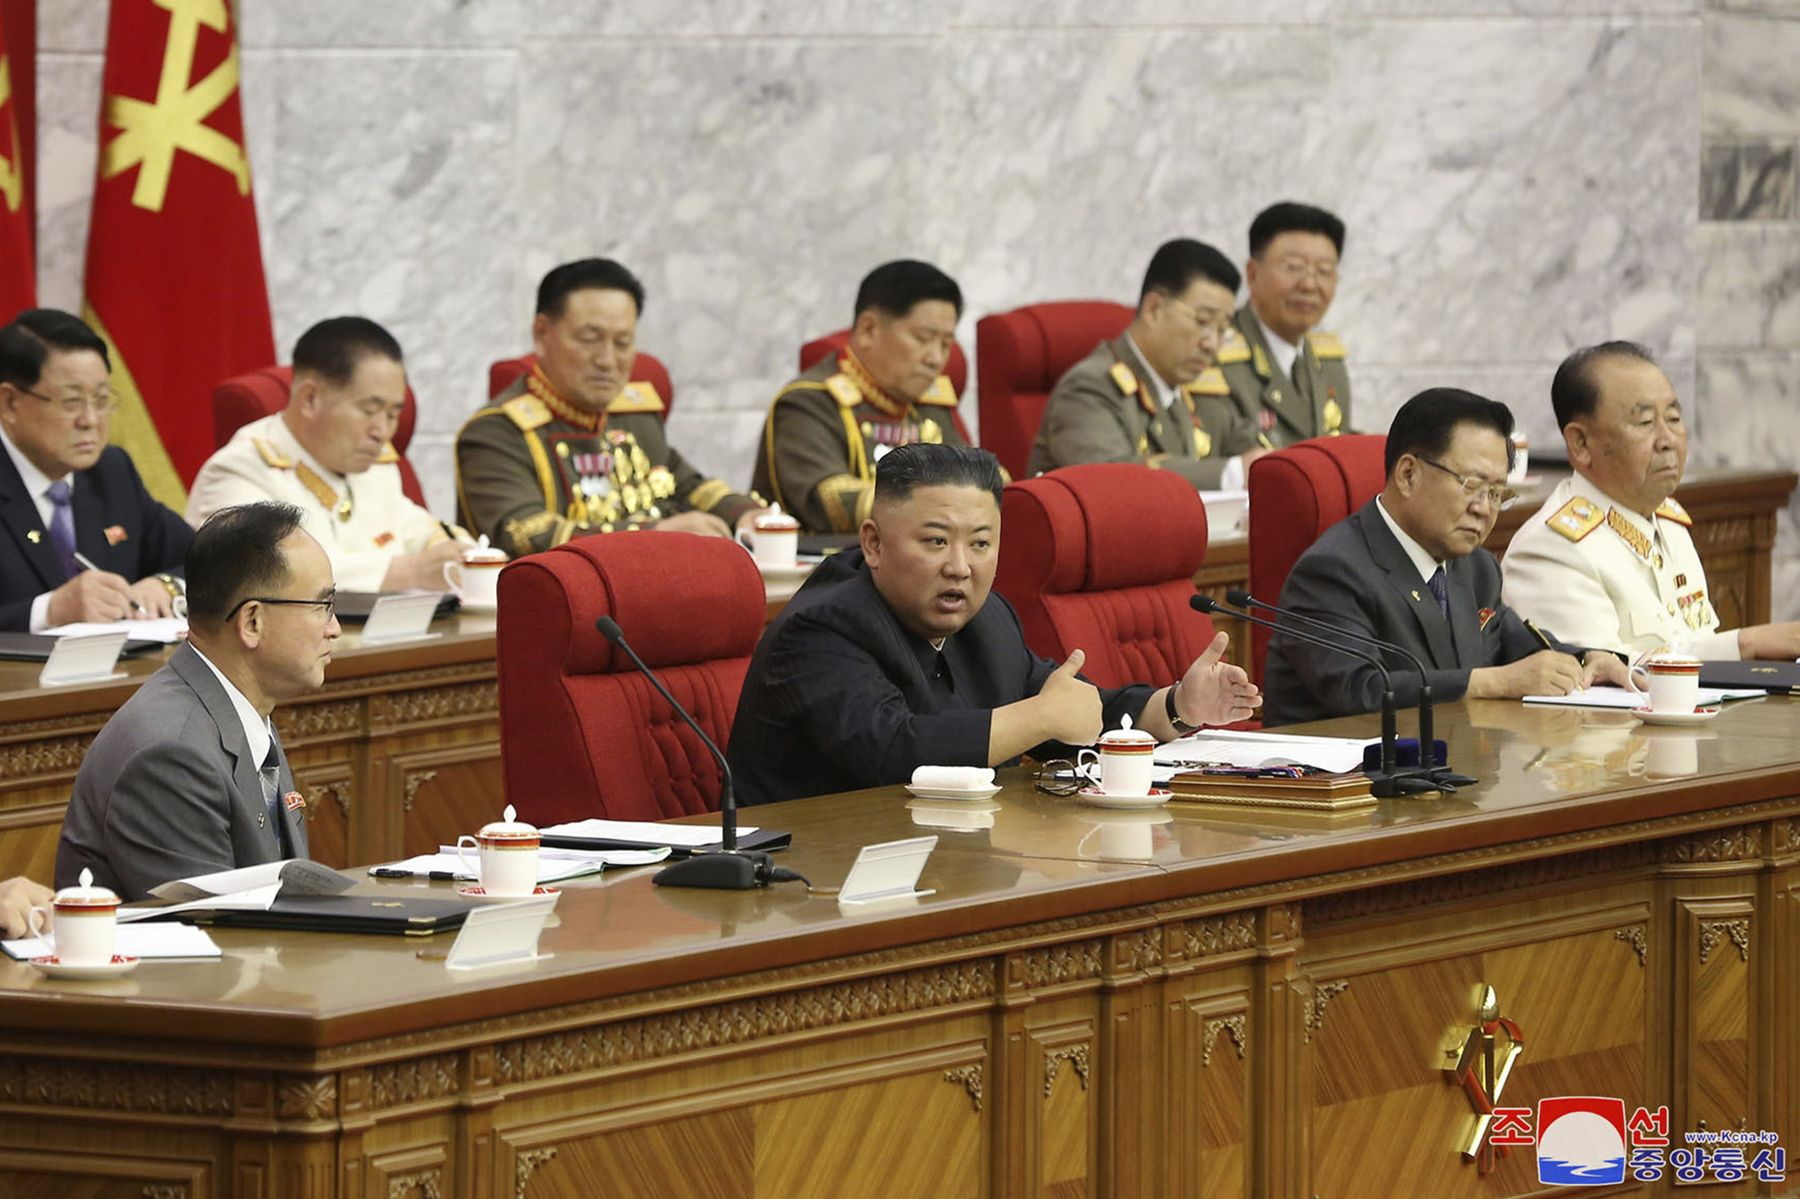 Kim Jong Un, center, speaks during a Workers' Party meeting in Pyongyang on June 17.